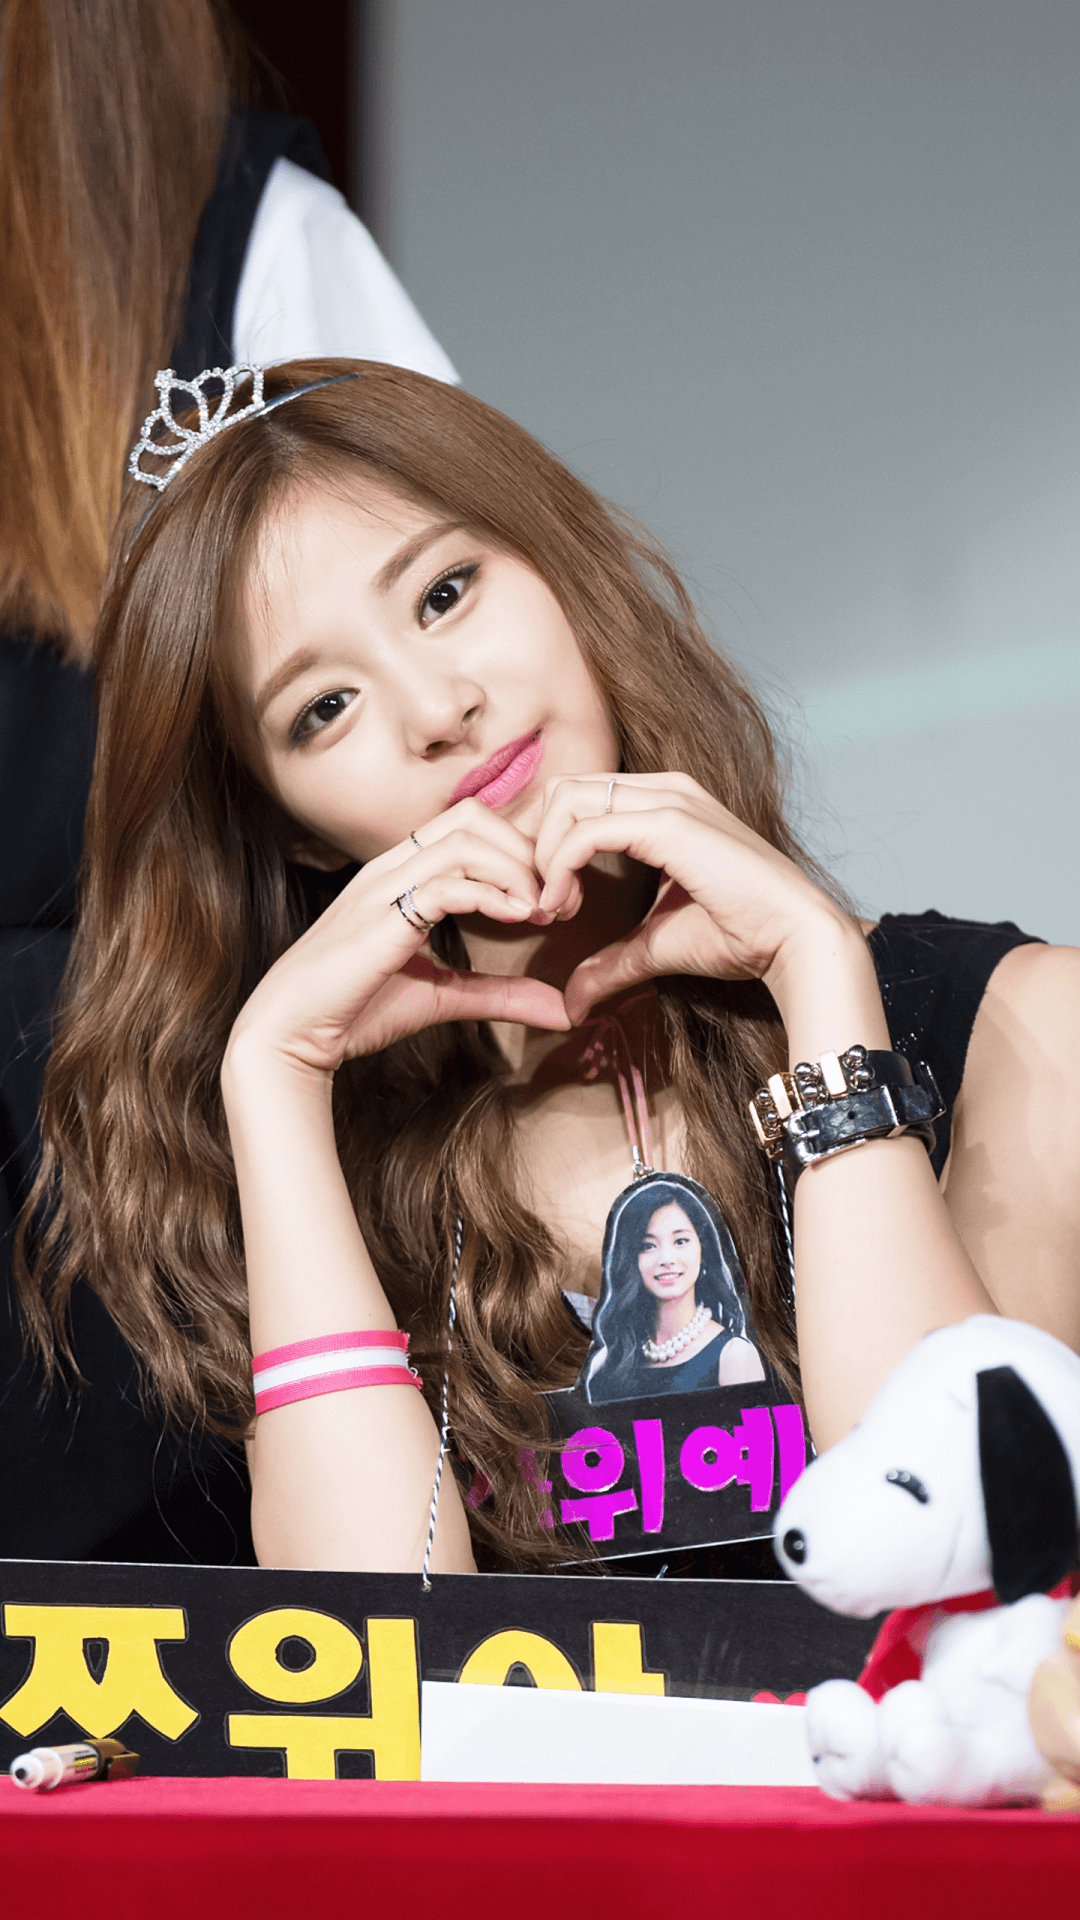 tzuyu wallpapers hashtag Image on Tumblr